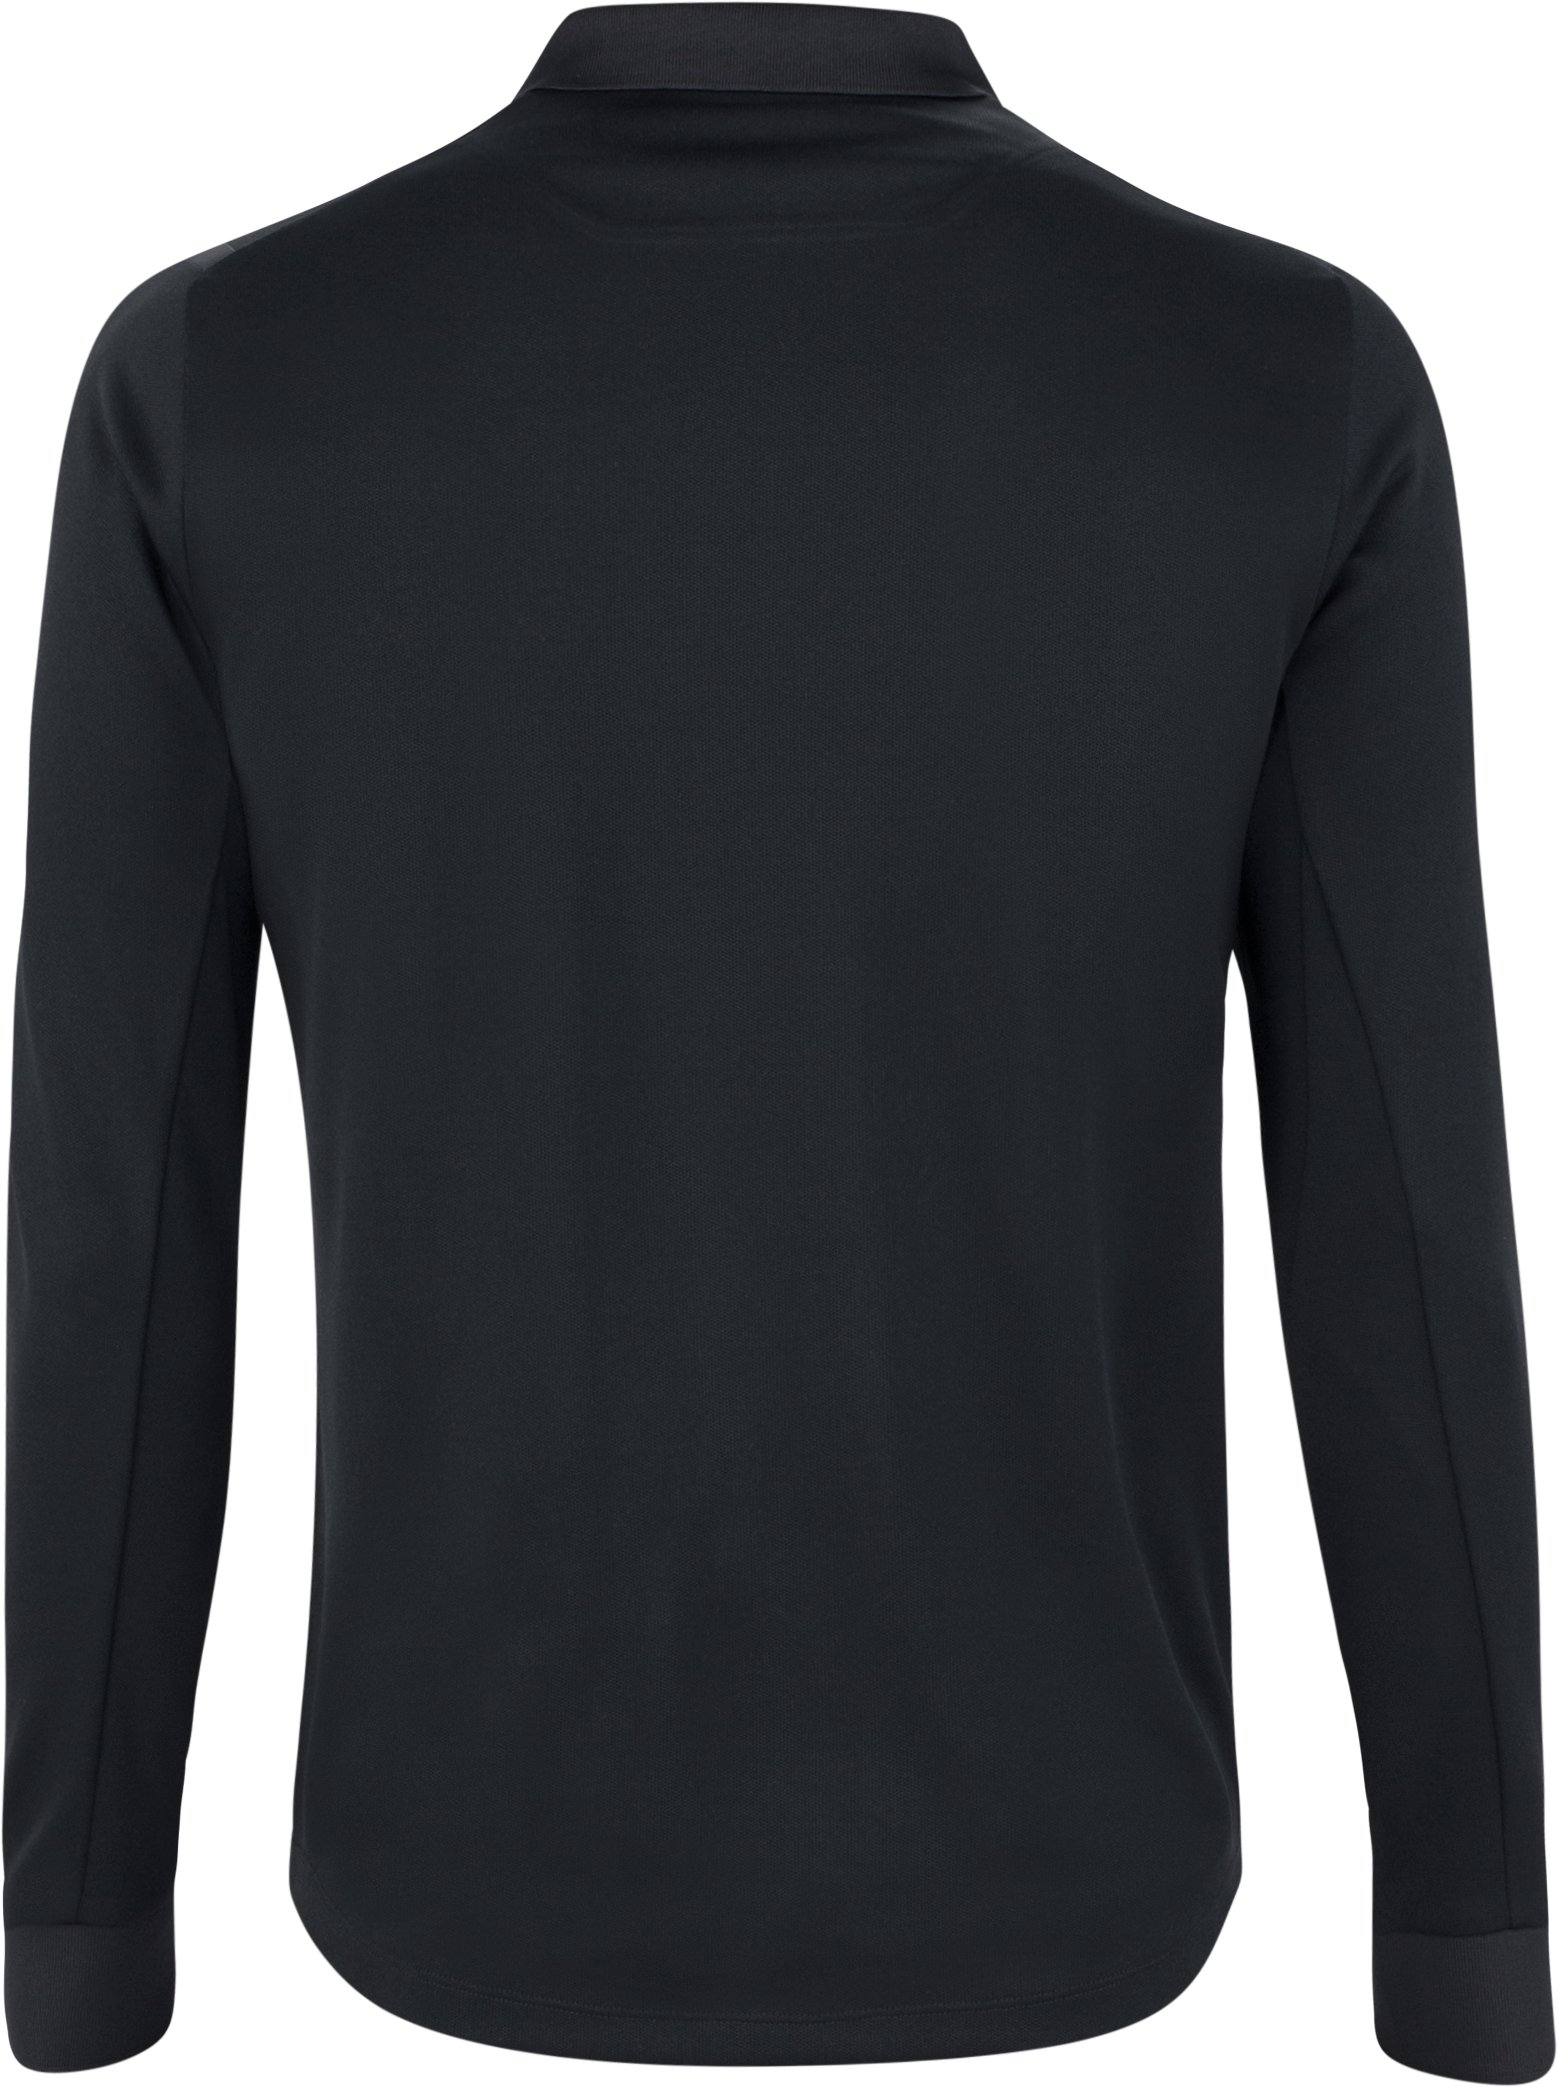 Men's UAS Pique Long Sleeve Polo, Black